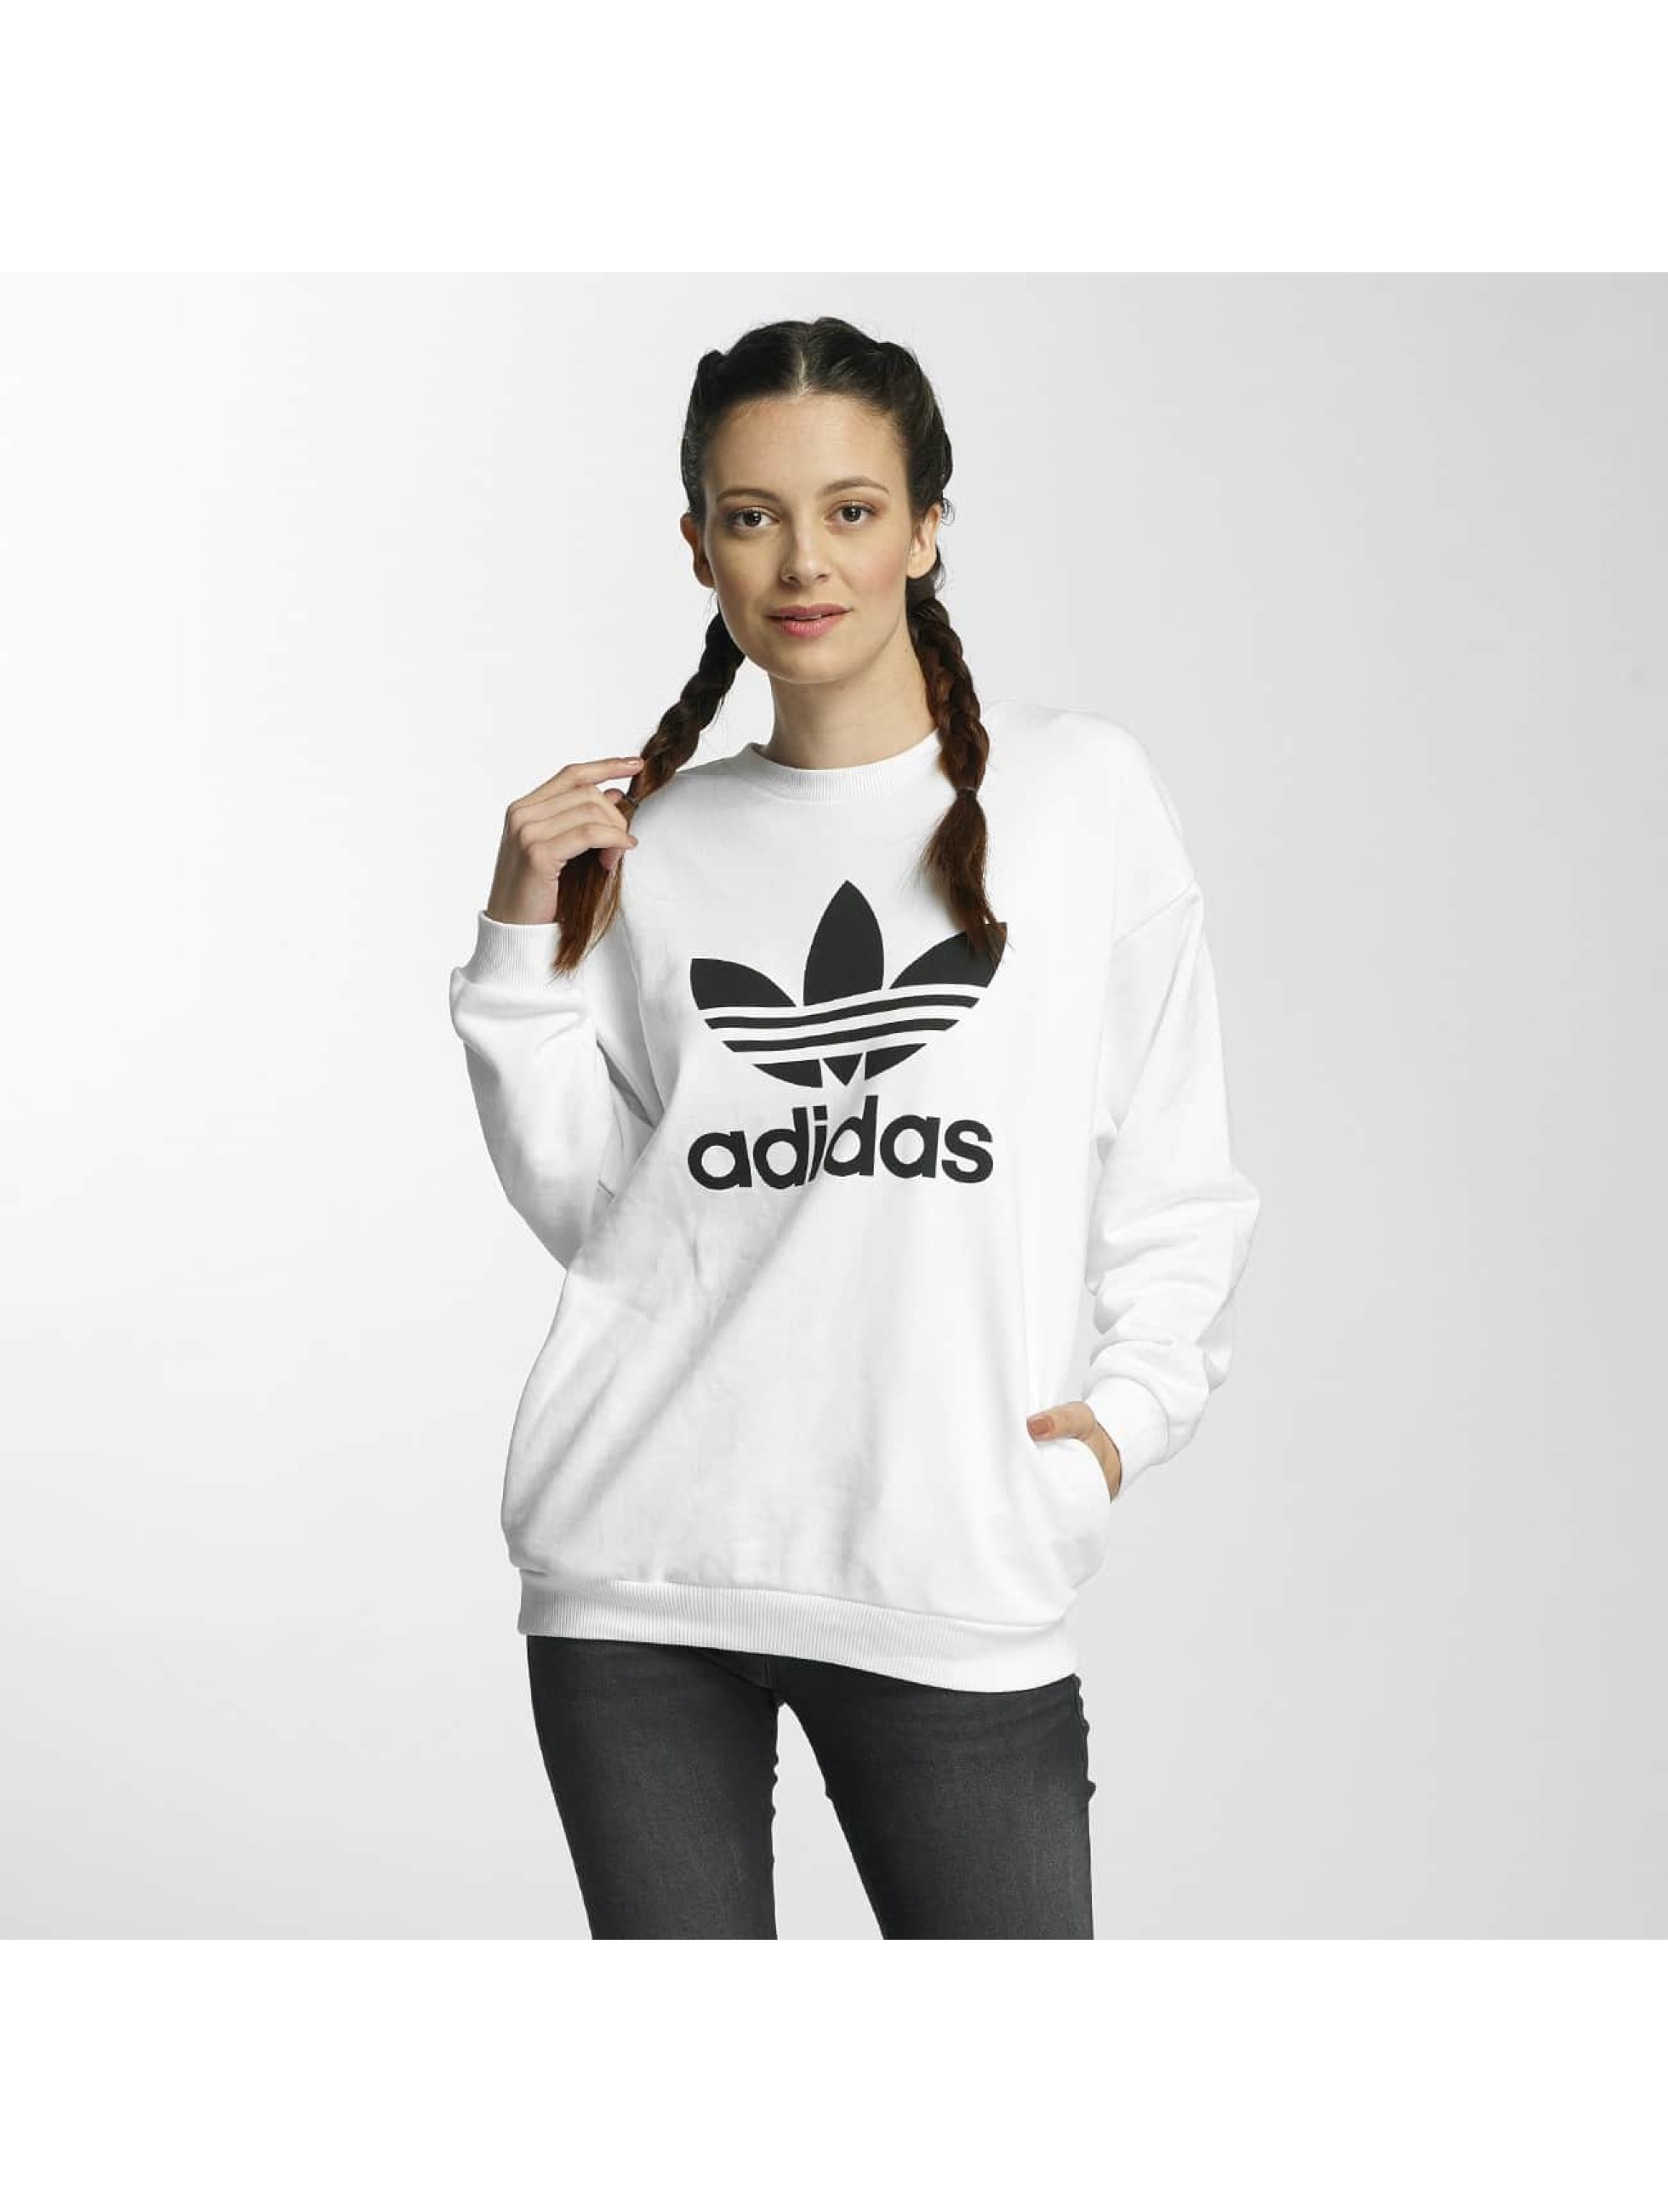 adidas damen oberteile pullover trefoil ebay. Black Bedroom Furniture Sets. Home Design Ideas